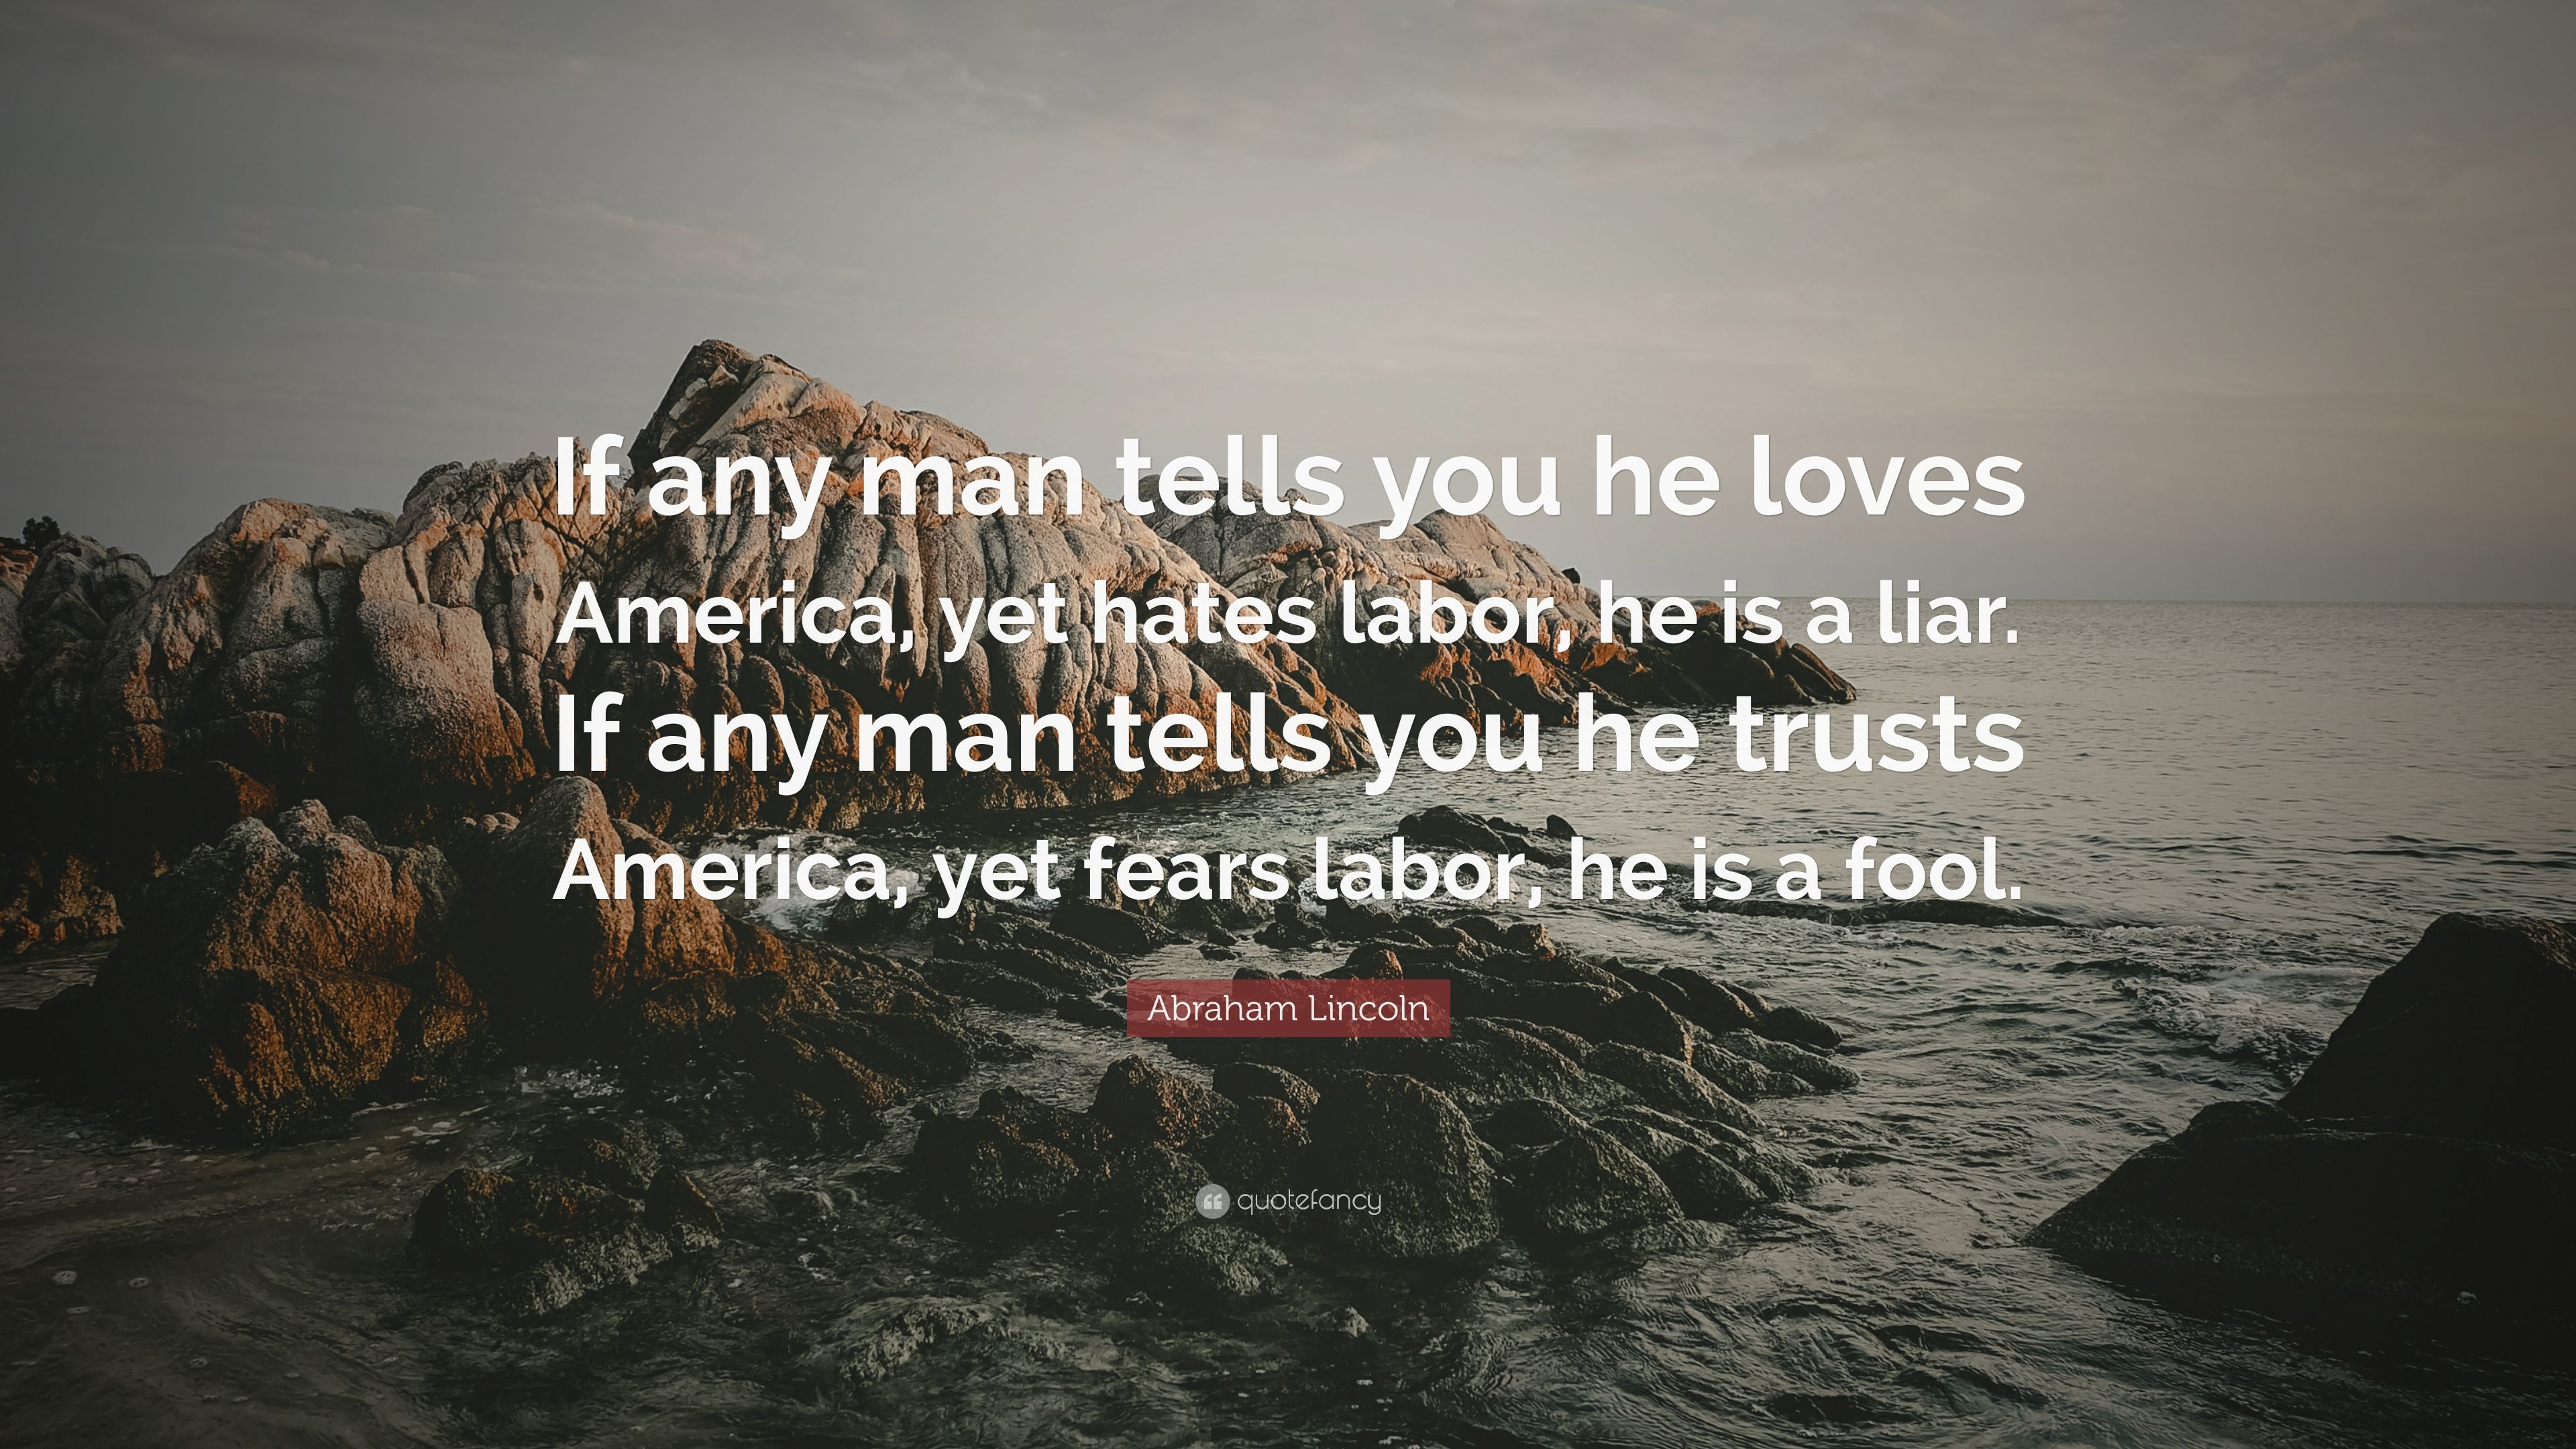 Abraham lincoln quote fool - Abraham Lincoln Quote If Any Man Tells You He Loves America Yet Hates